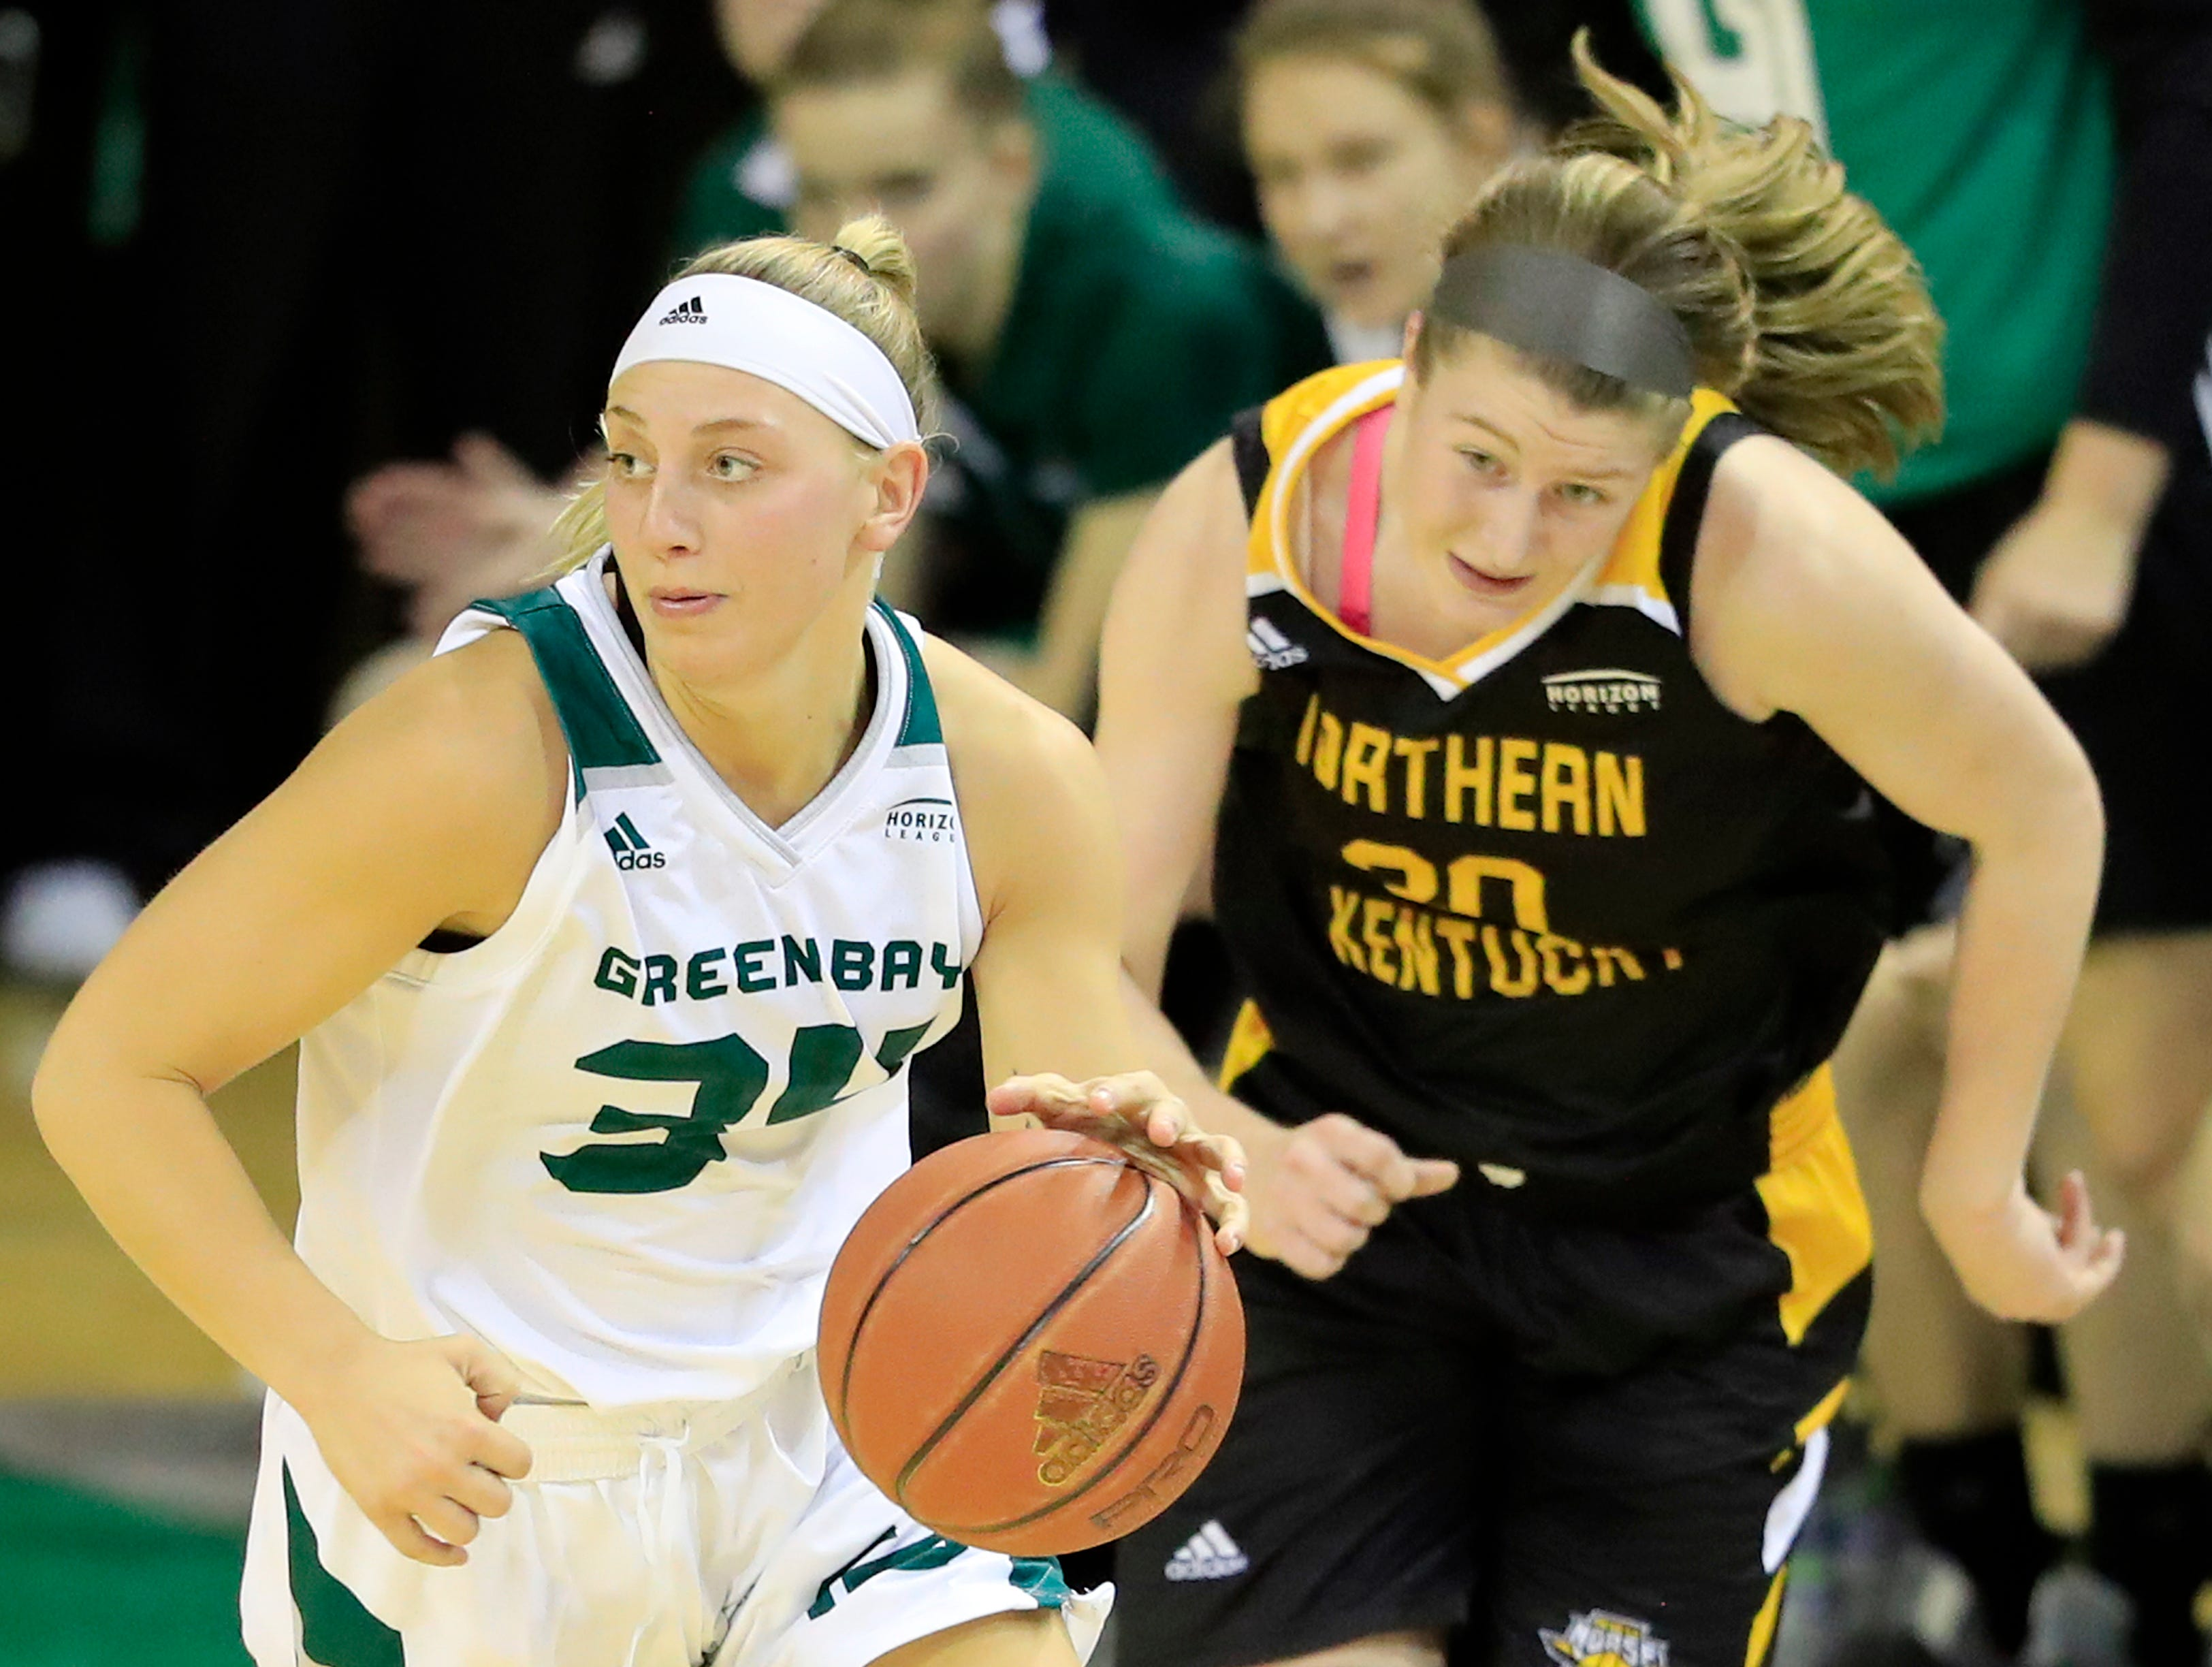 Green Bay Phoenix forward Carly Mohns (34) dribbles away from Northern Kentucky Norse forward/center Emmy Souder (30) in a Horizon League women's basketball game at the Kress Center on Thursday, February 7, 2019 in Green Bay, Wis.